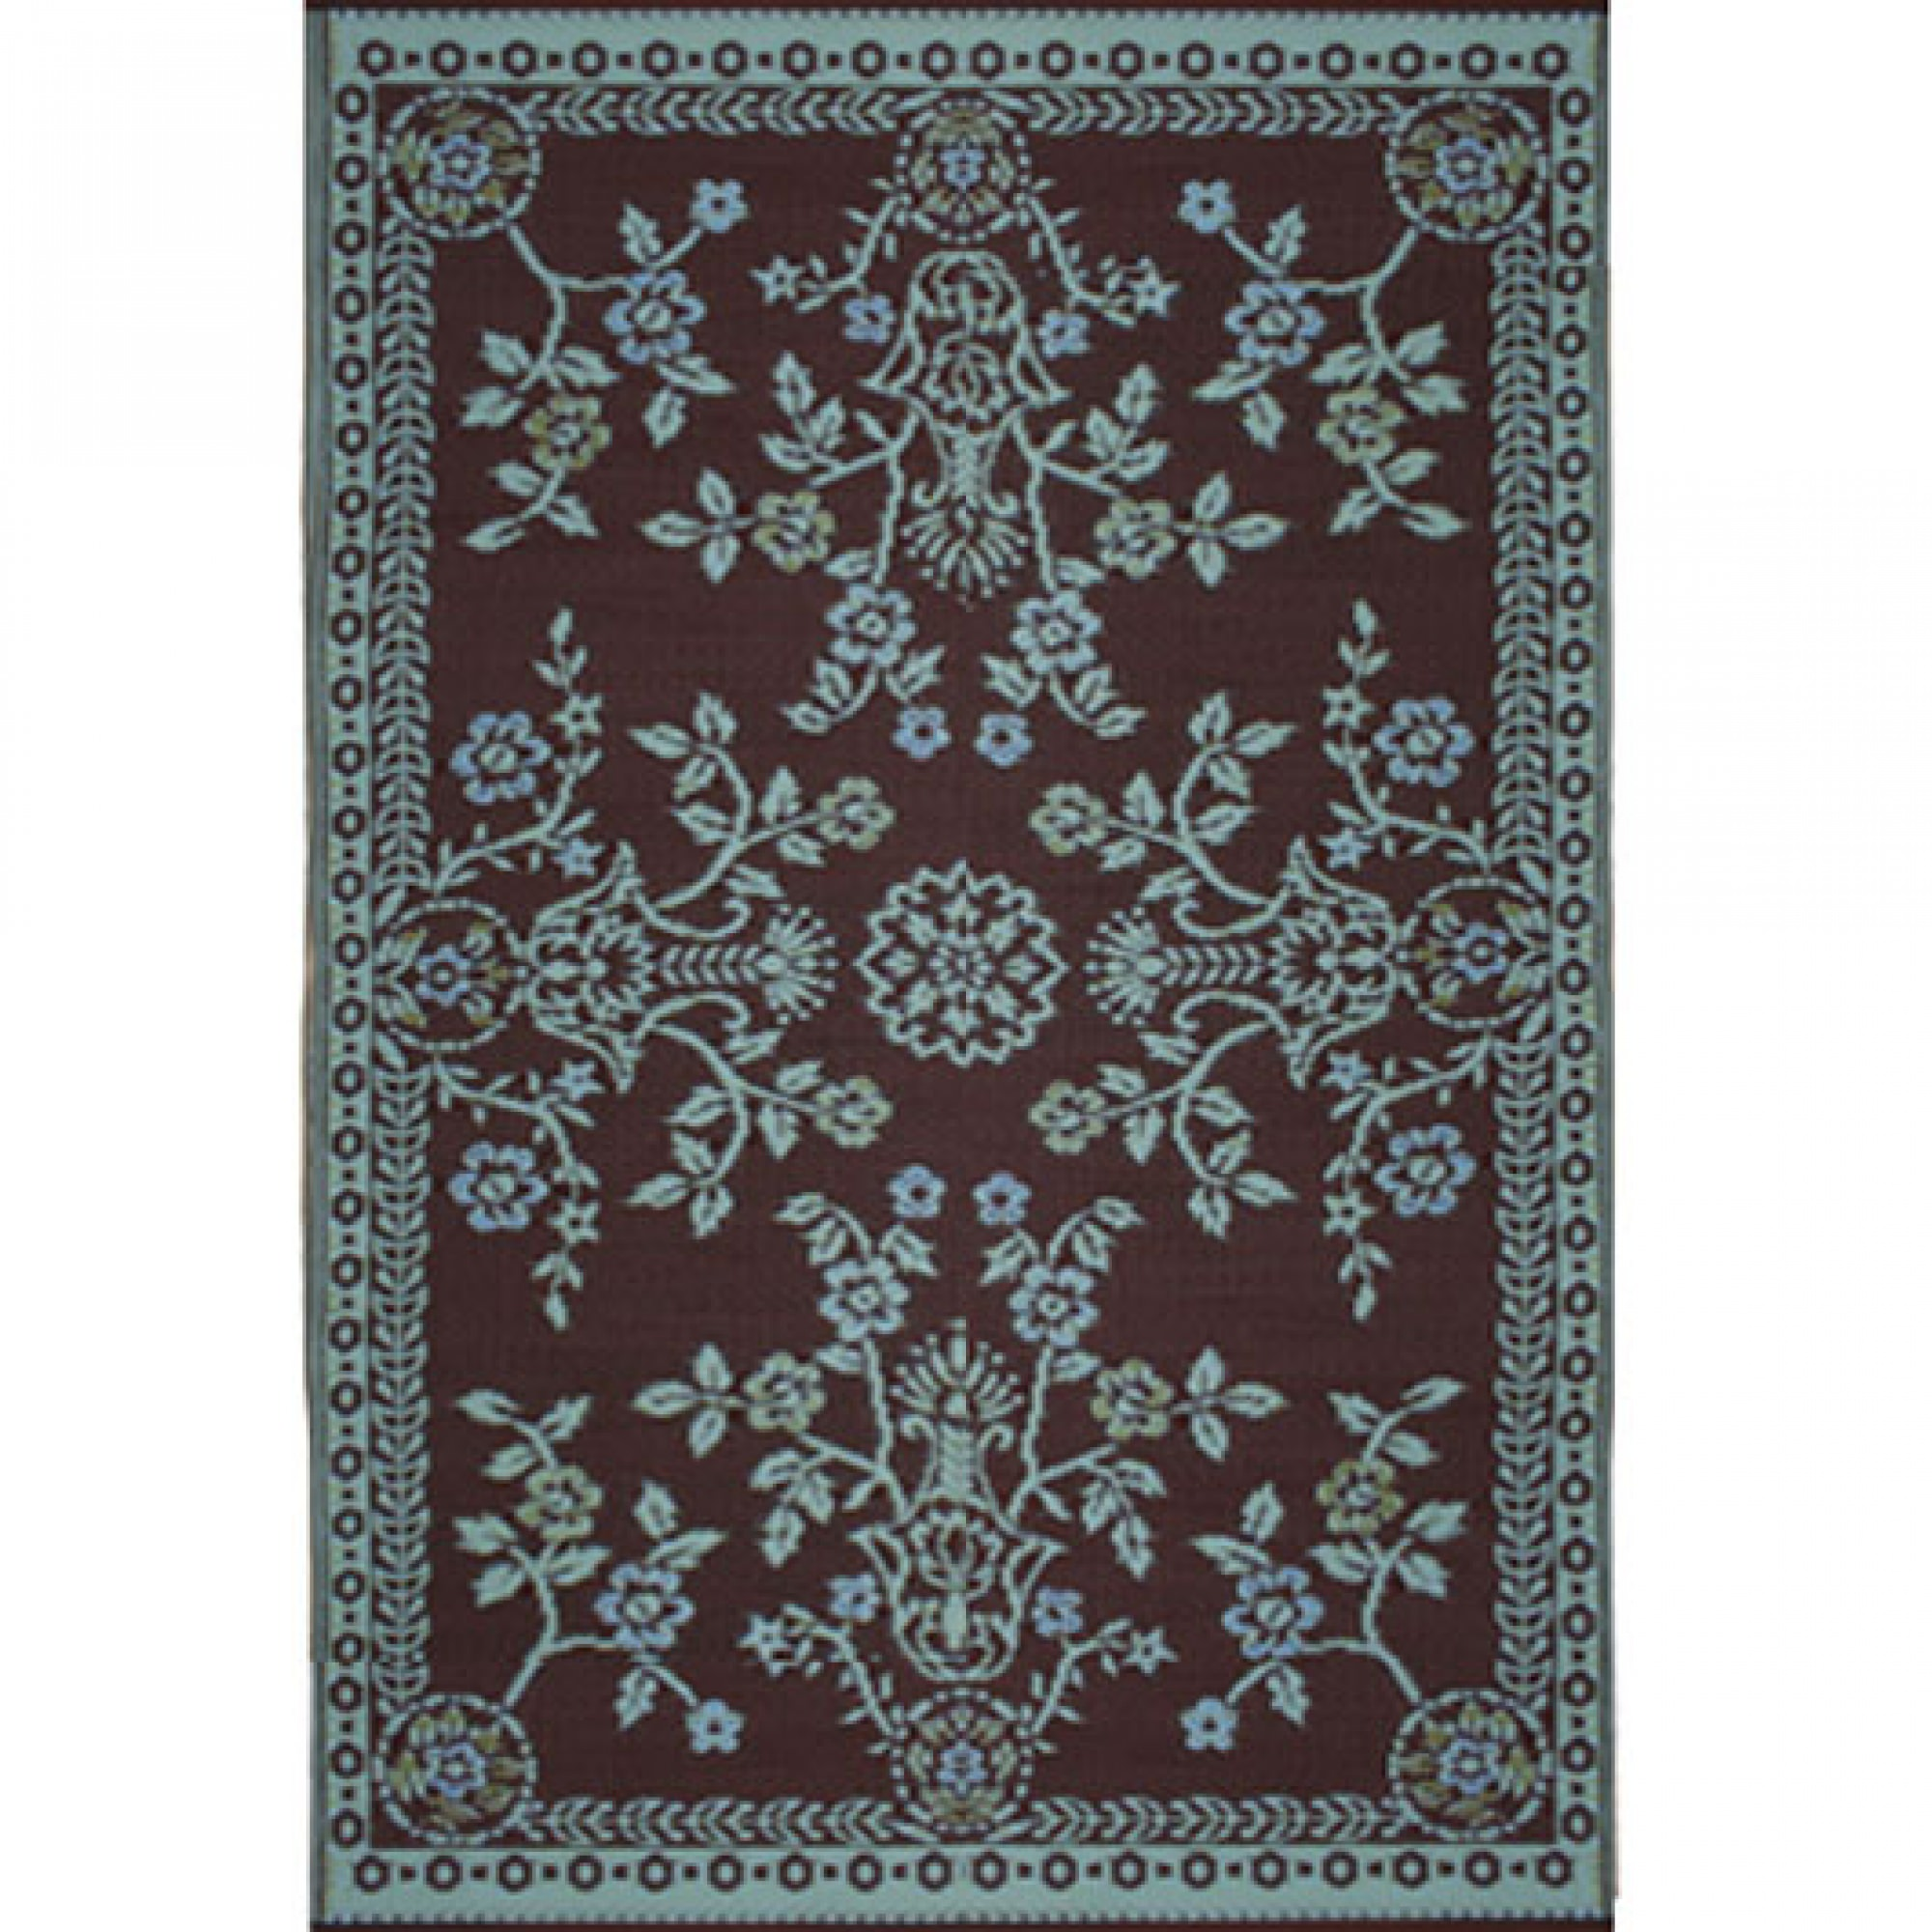 Plastic Outdoor Rug Mat: Mad Mats - Oriental Garland Teal/Brown - 6x9